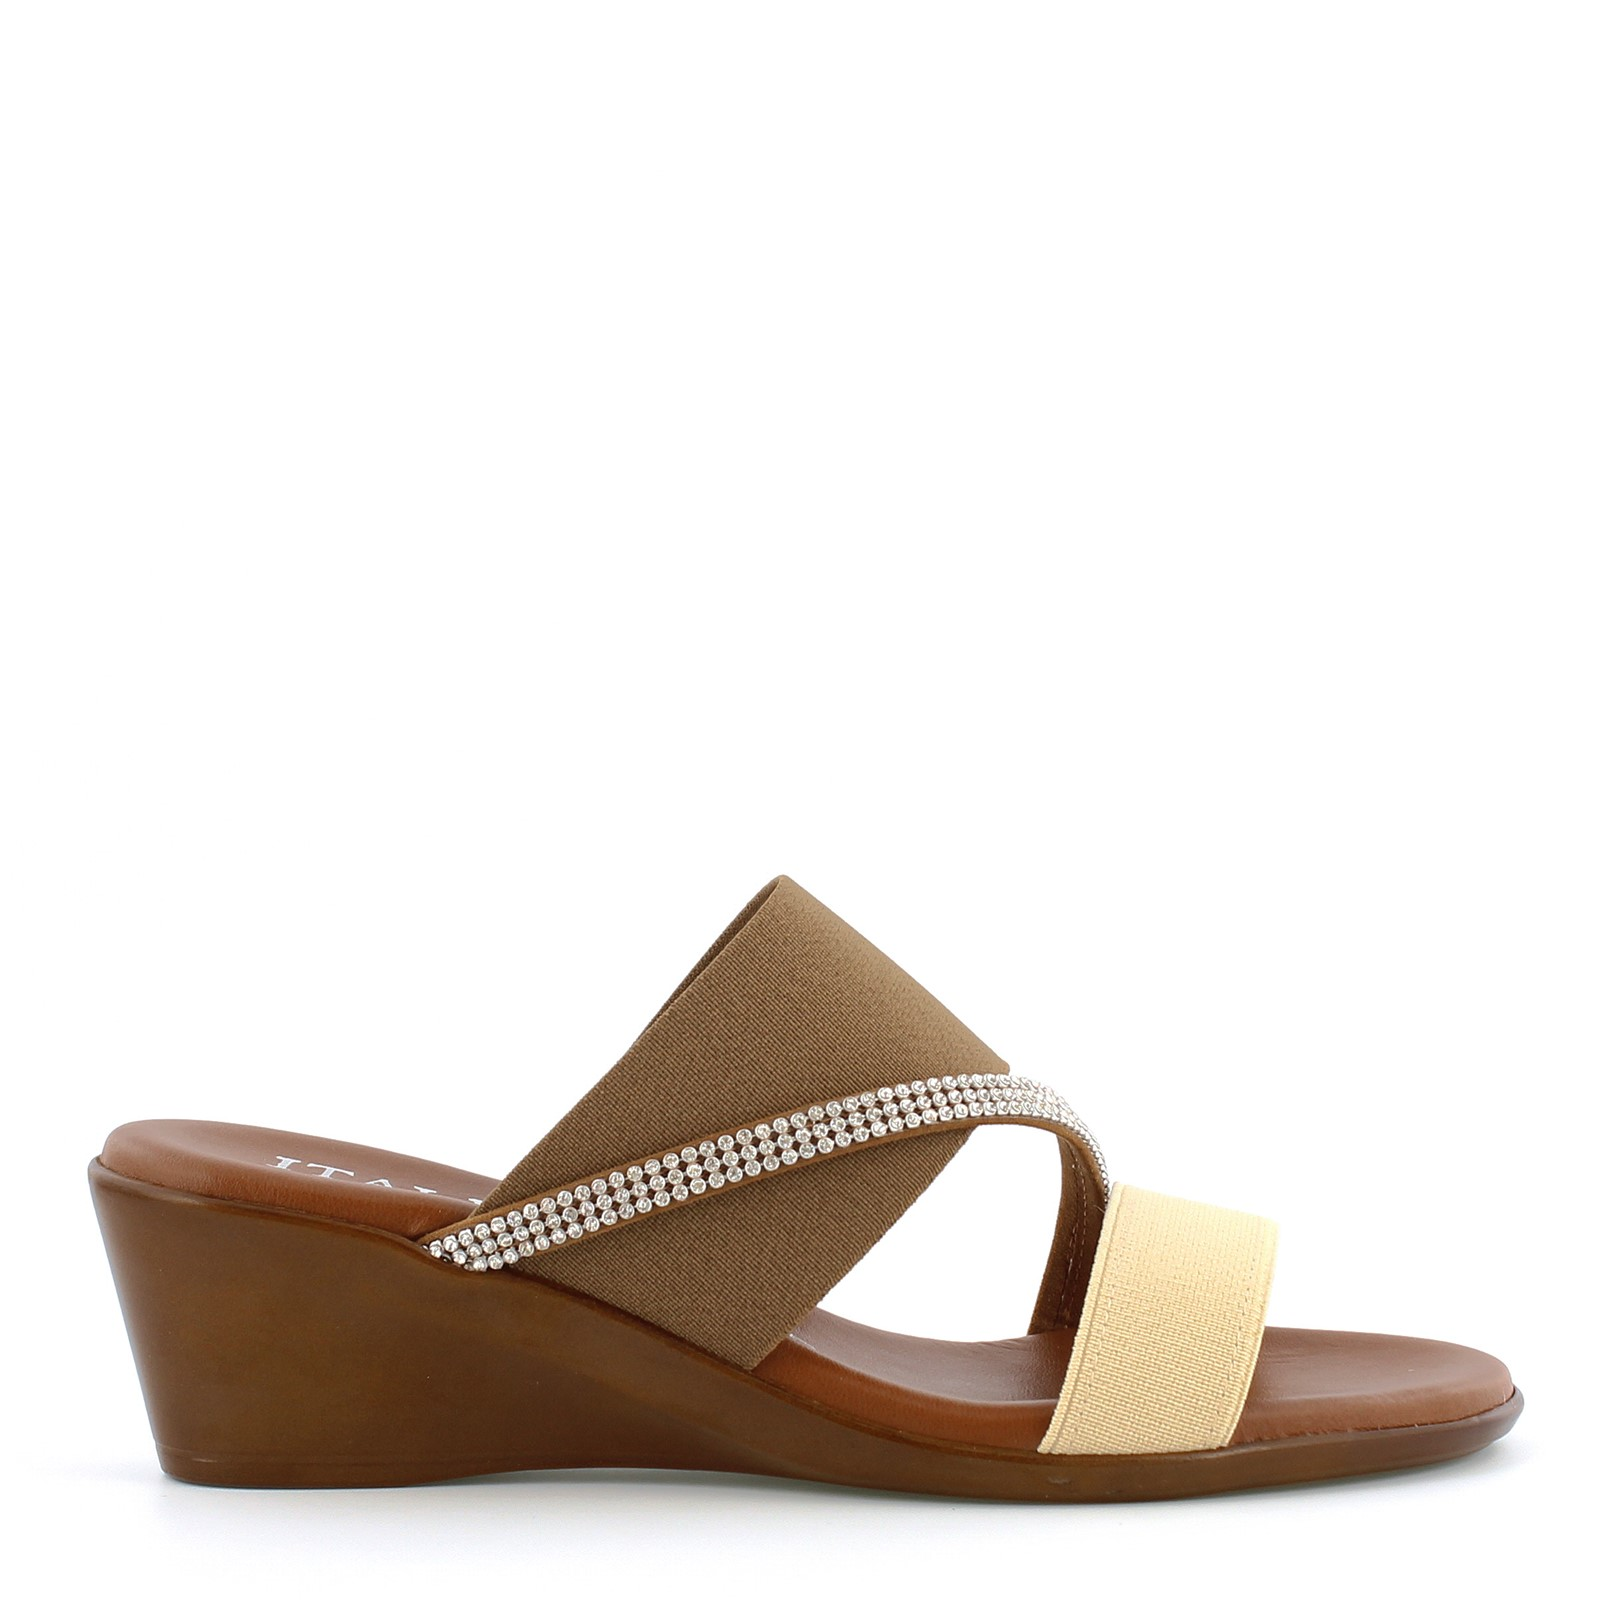 Women's Italian Shoemakers, Maryam Sandals